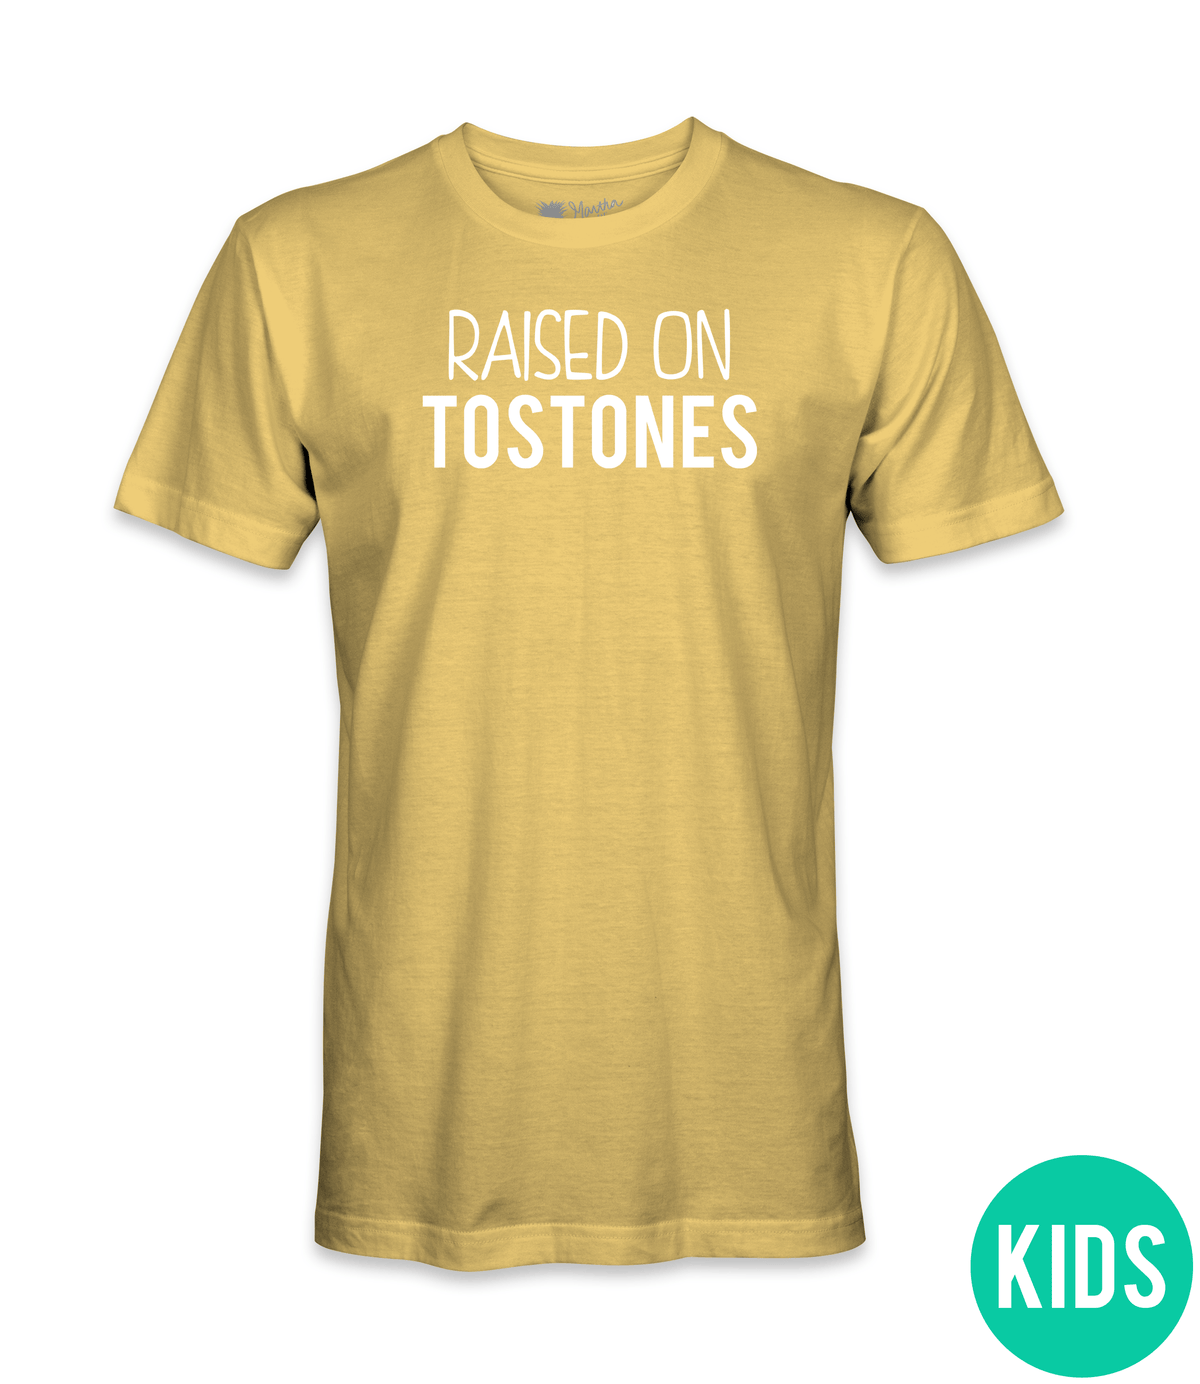 Raised On Tostones - Boys